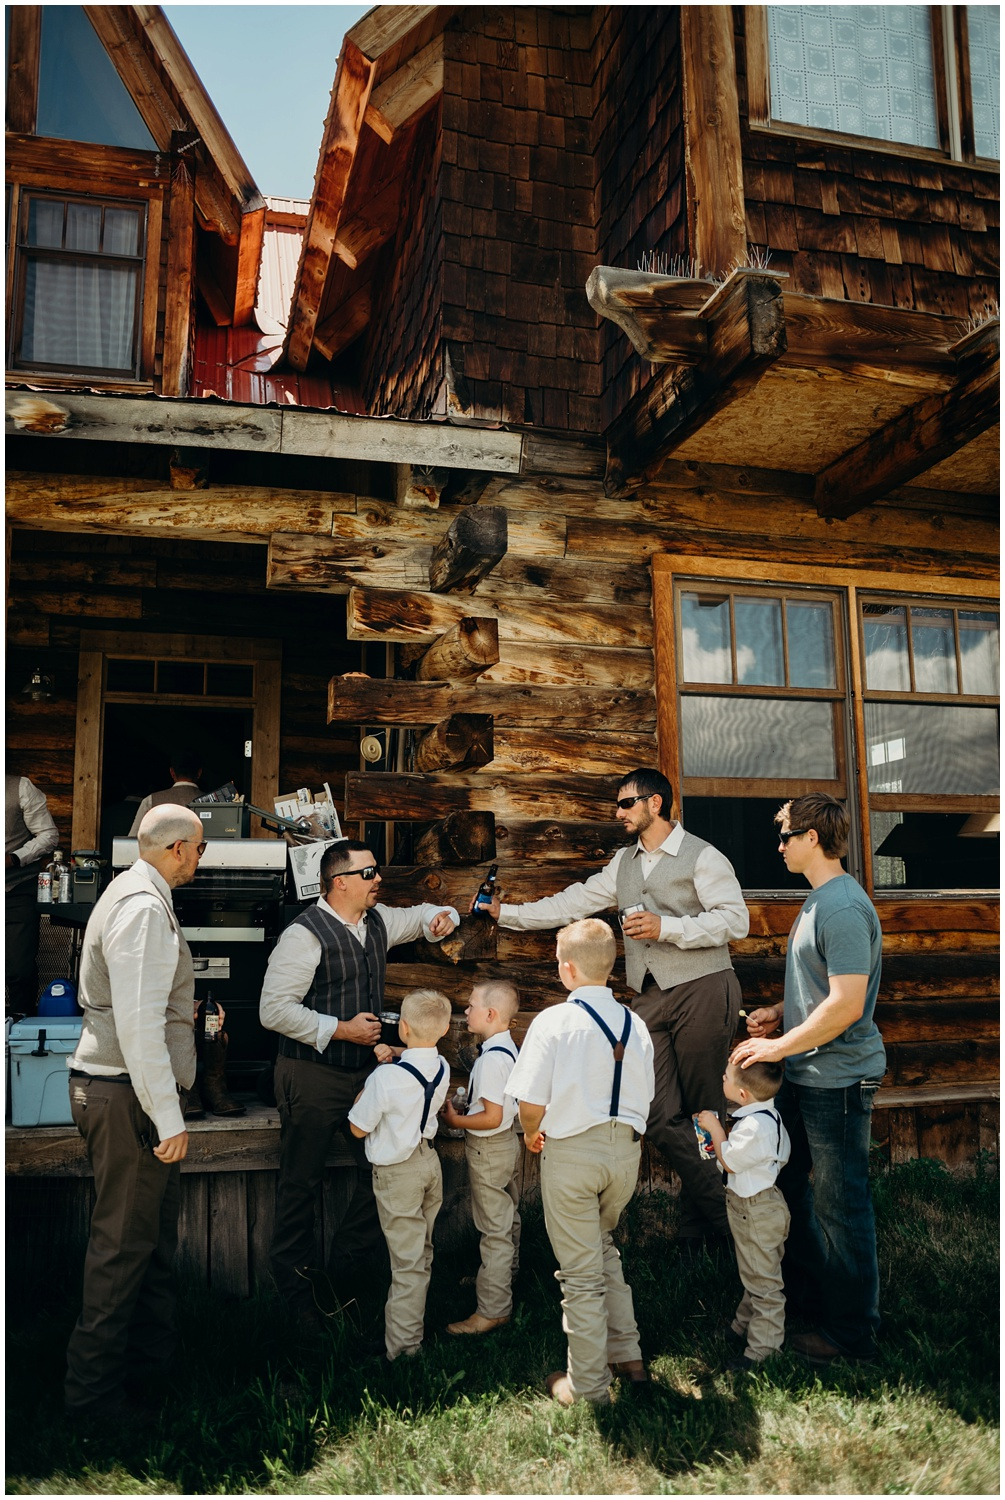 Outdoor wedding in Steamboat, Colorado documented with photojournalism